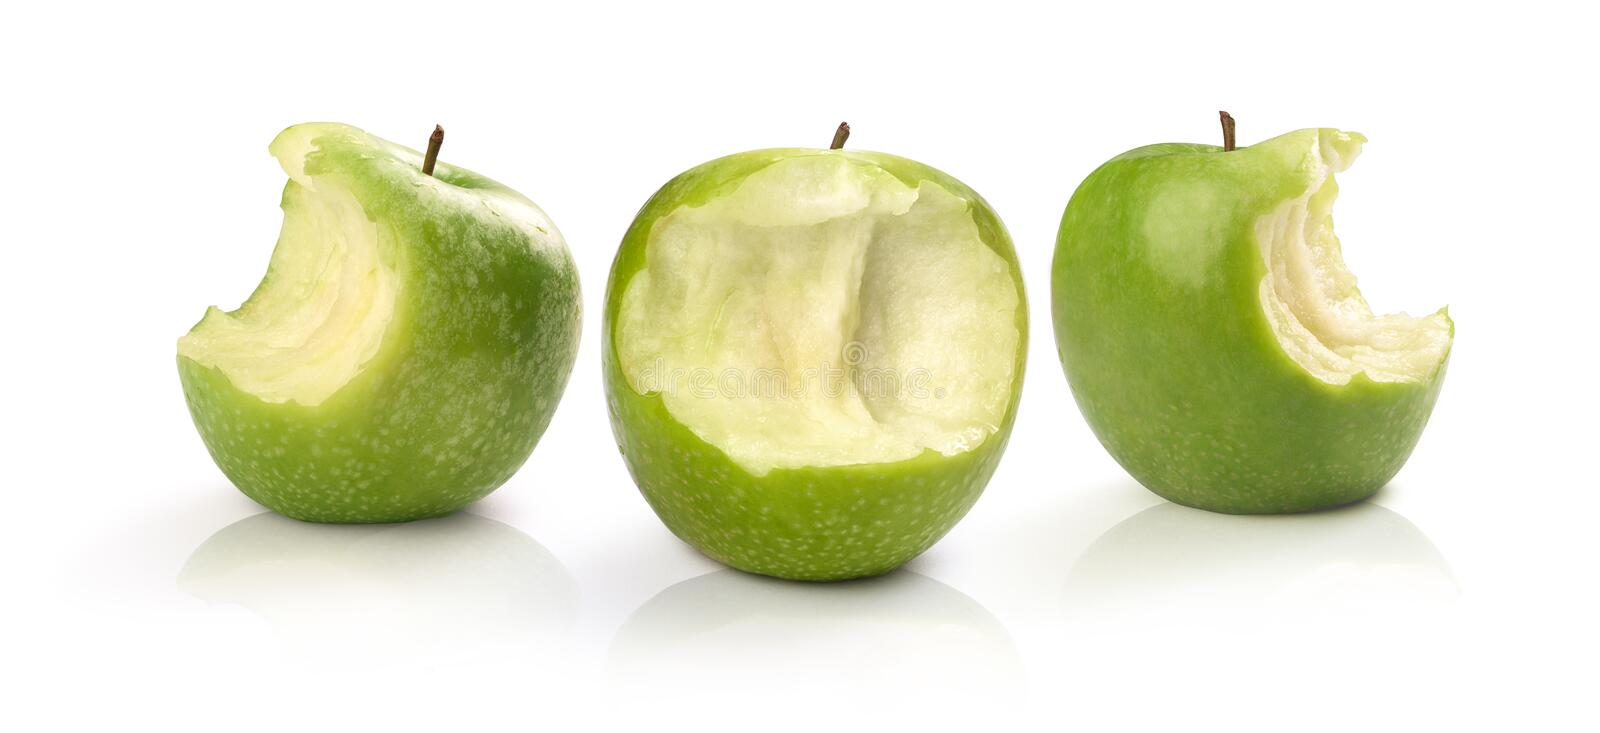 Three green apples. Green  apples on a white background royalty free stock image